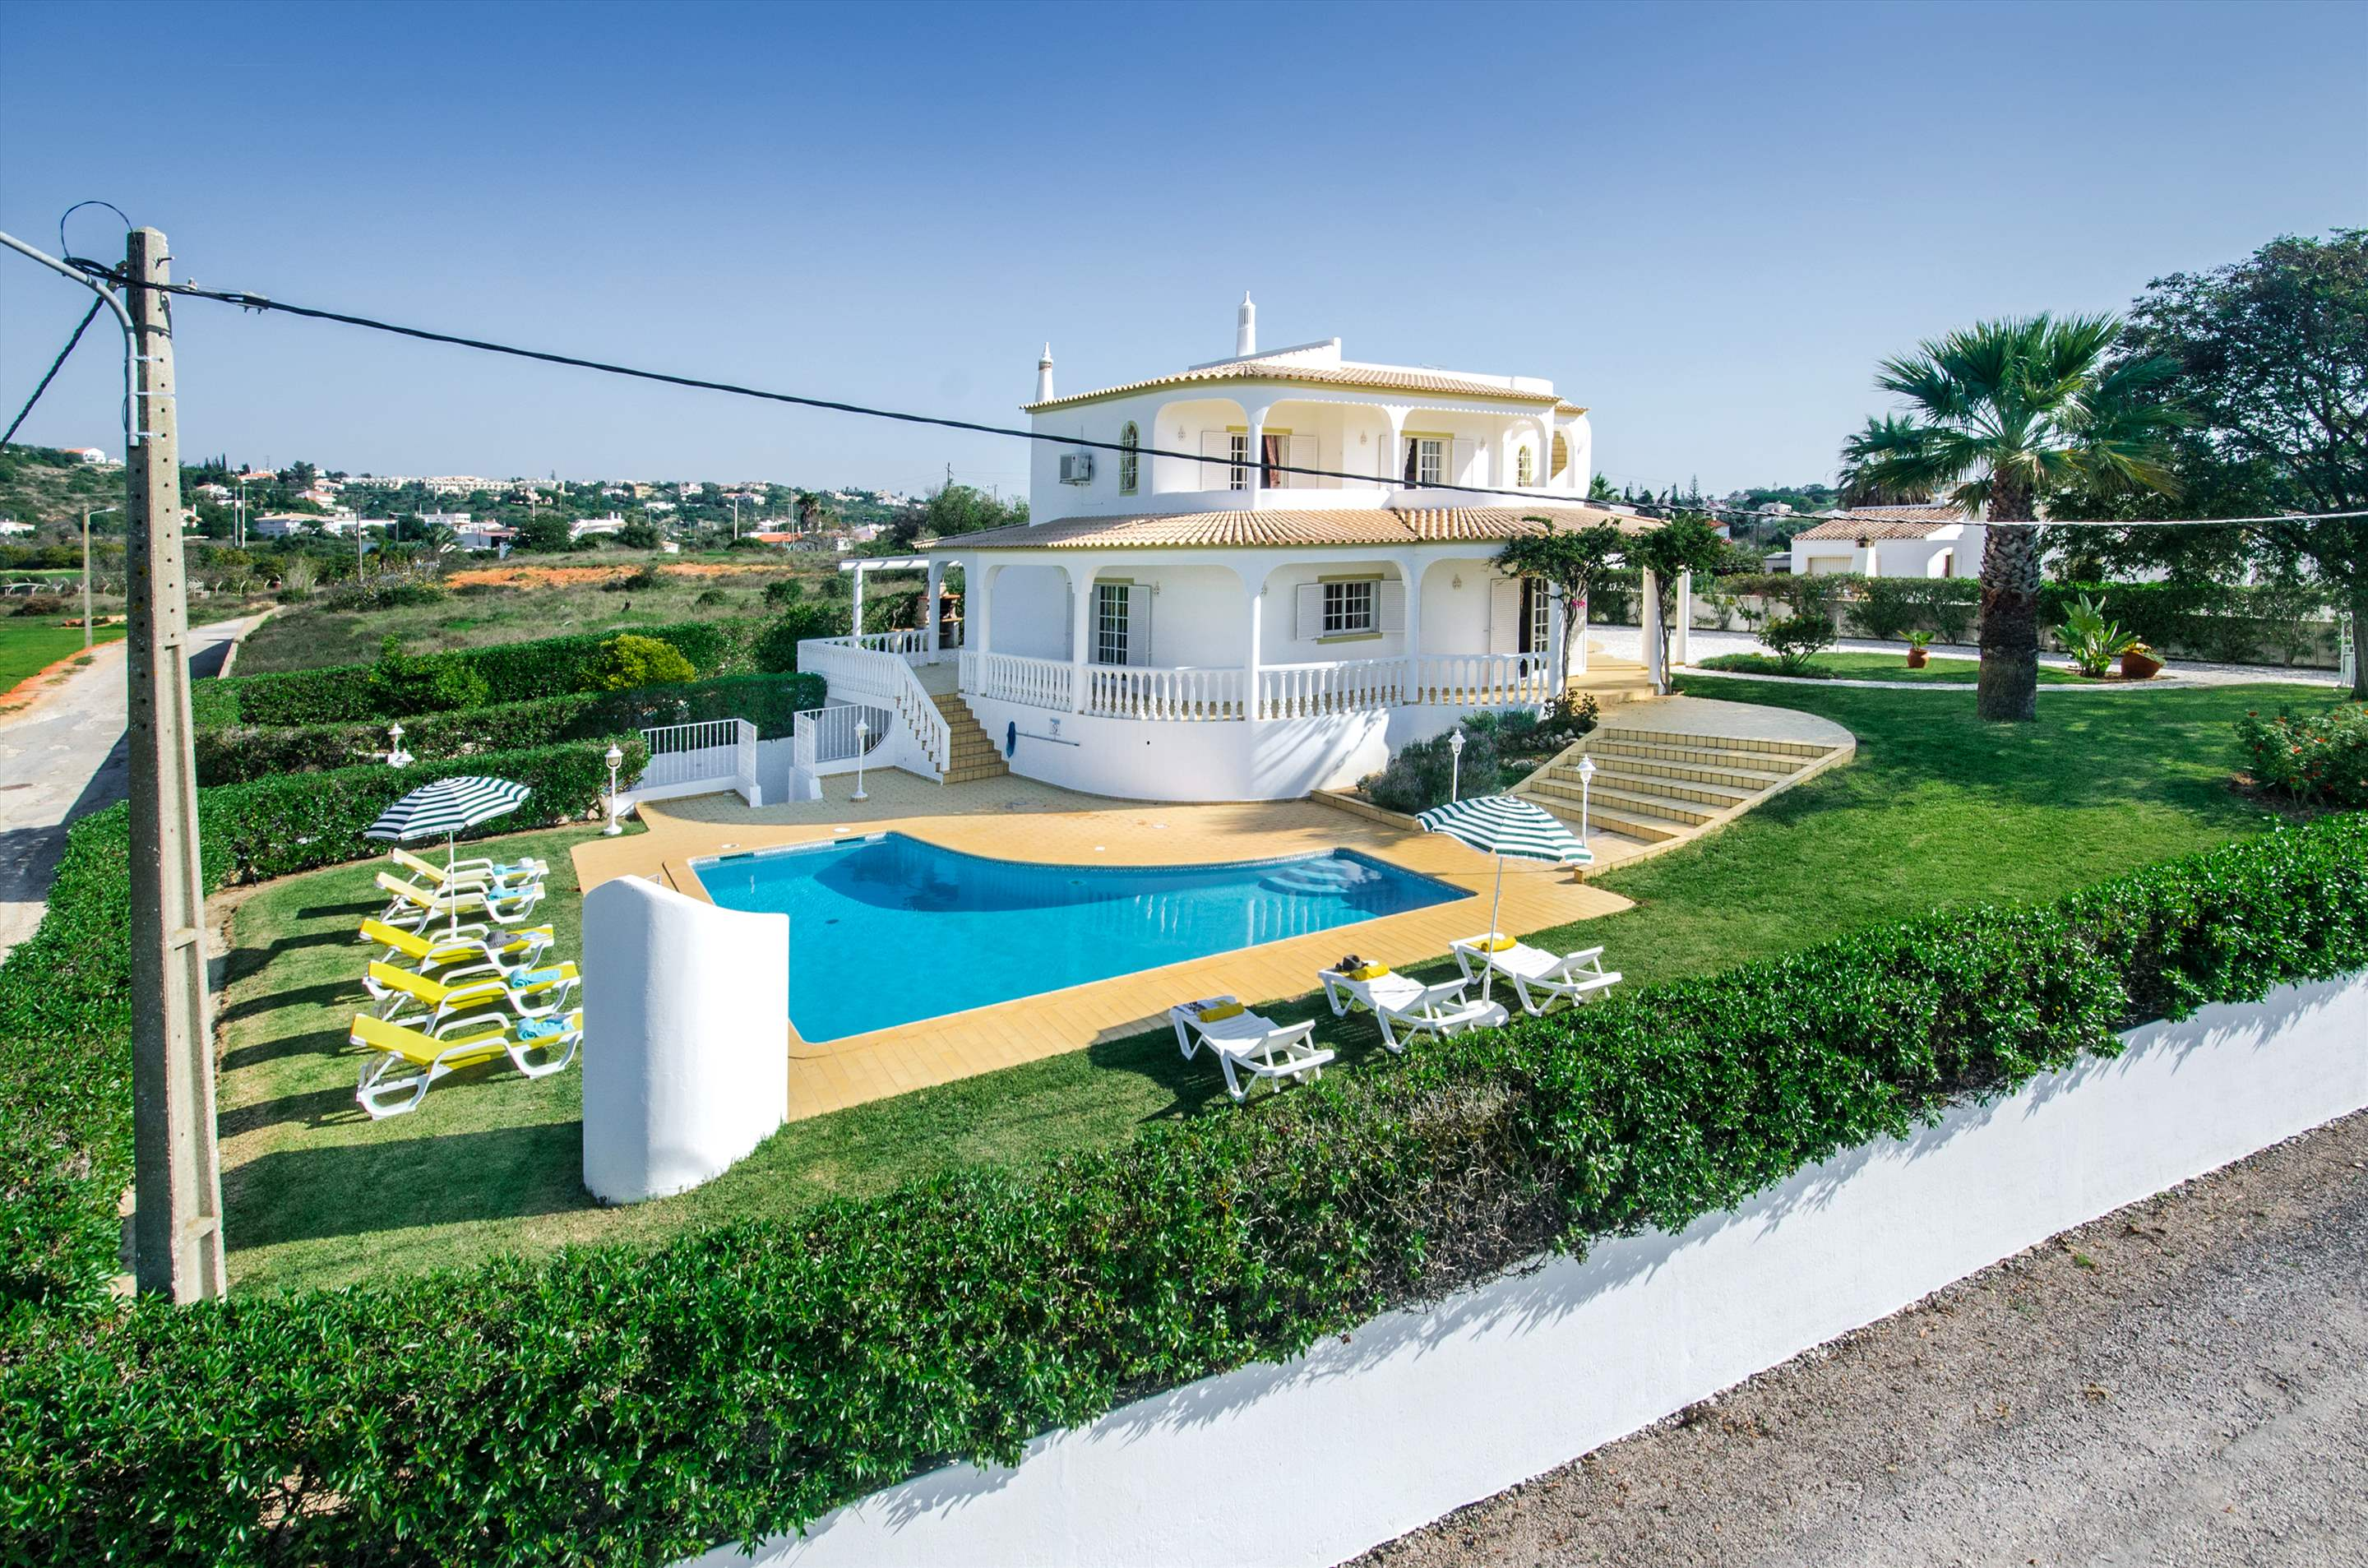 Villa Marco Real, 7-8 persons rate, 4 bedroom villa in Gale, Vale da Parra and Guia, Algarve Photo #9